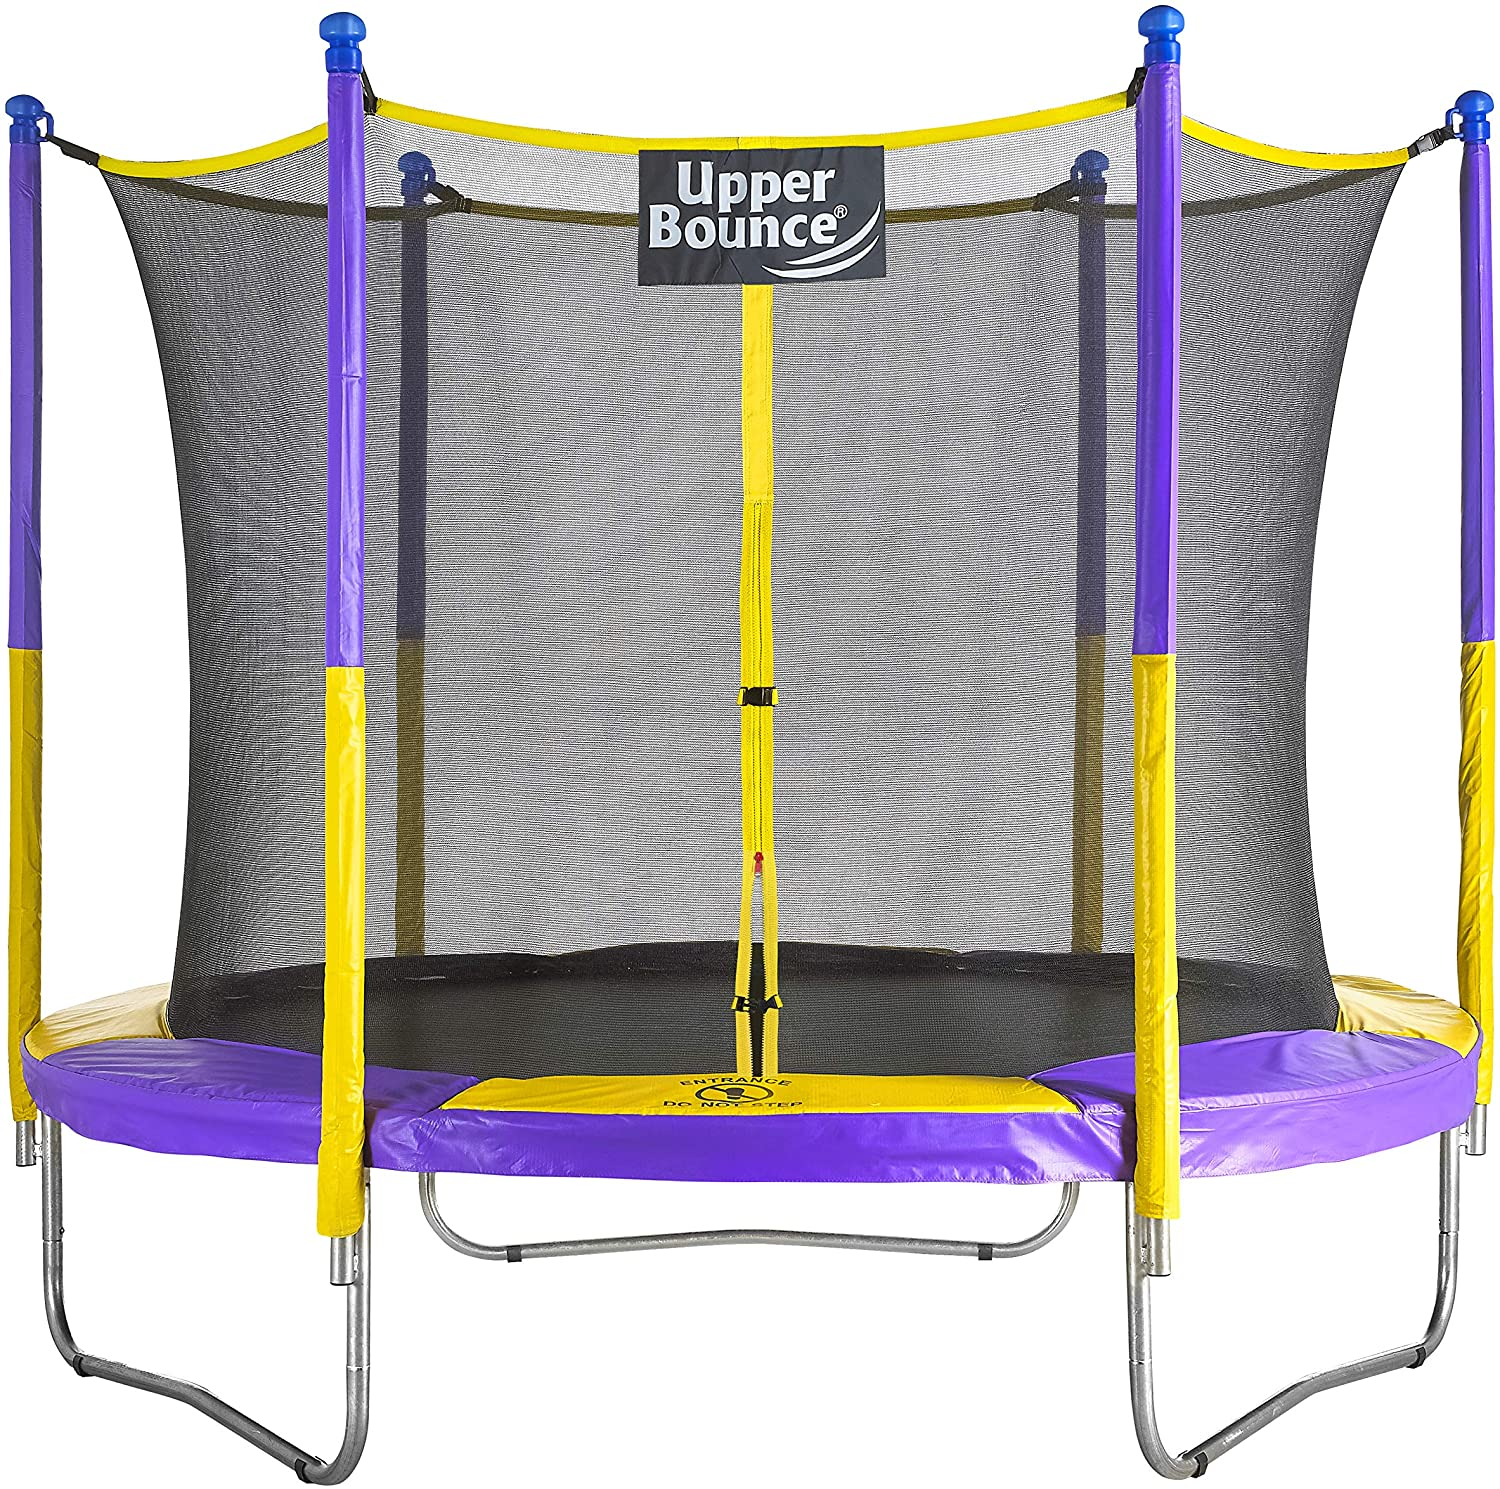 Upper Bounce 9 FT Round Yellow and Purple Trampoline Set with Safety Enclosure System